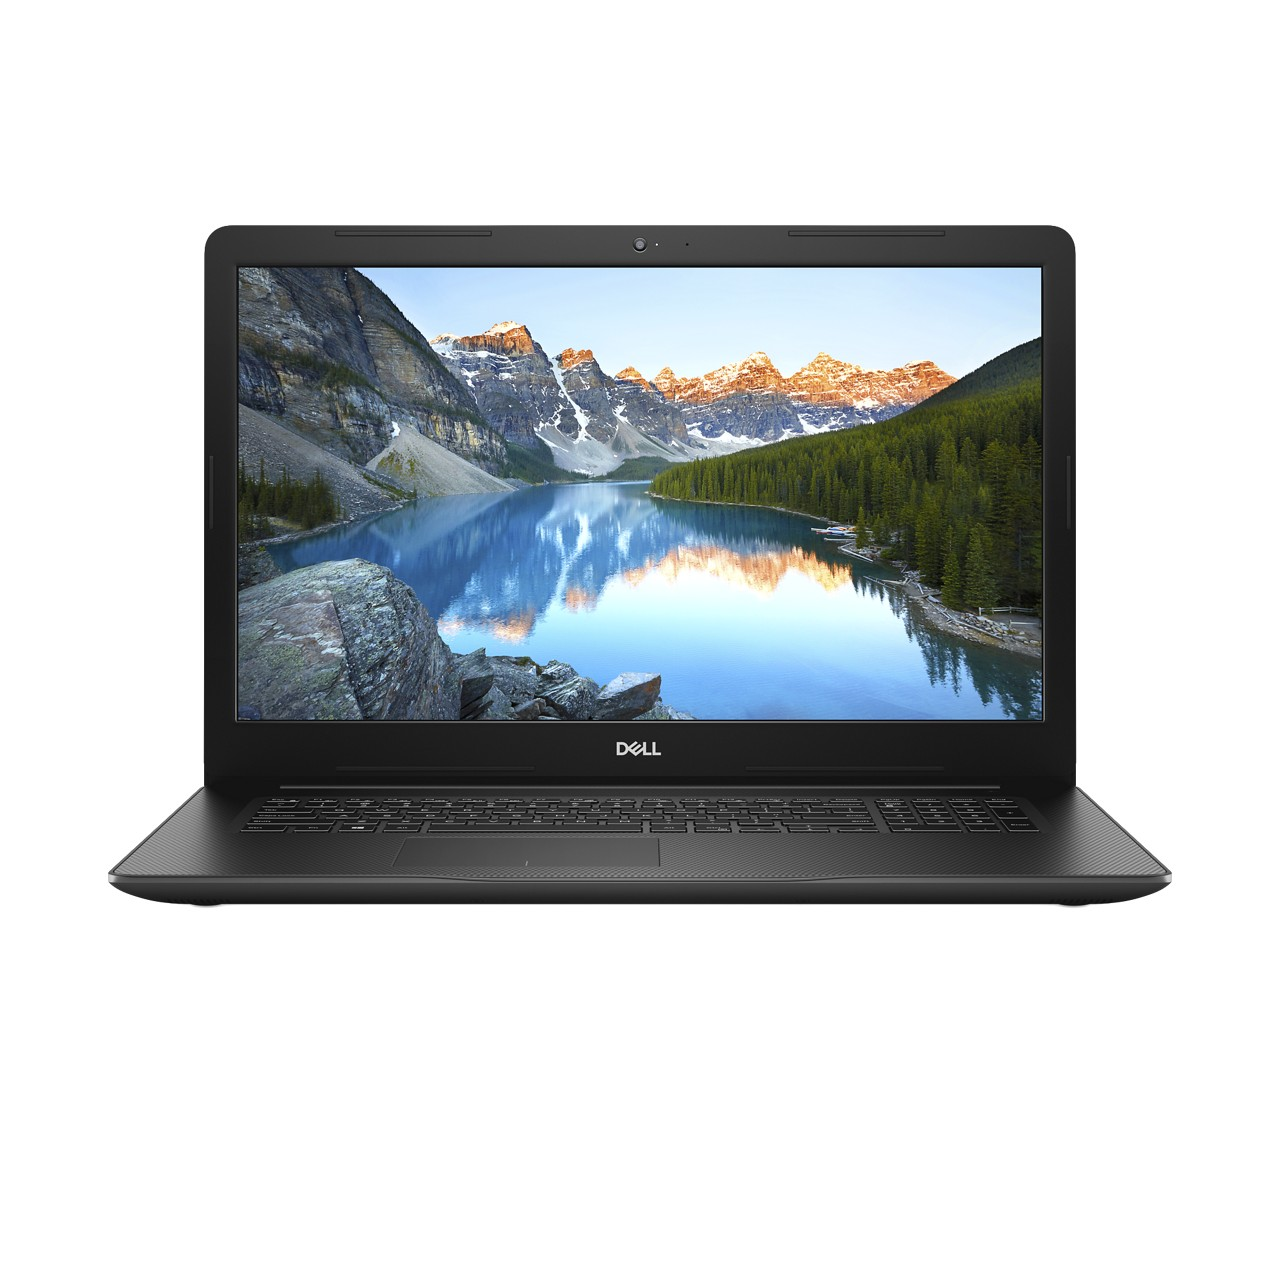 "Dell Inspiron 17 3780 17.3"" Laptop (Quad i5 / 8GB / 1TB) + $27.59 Credit"